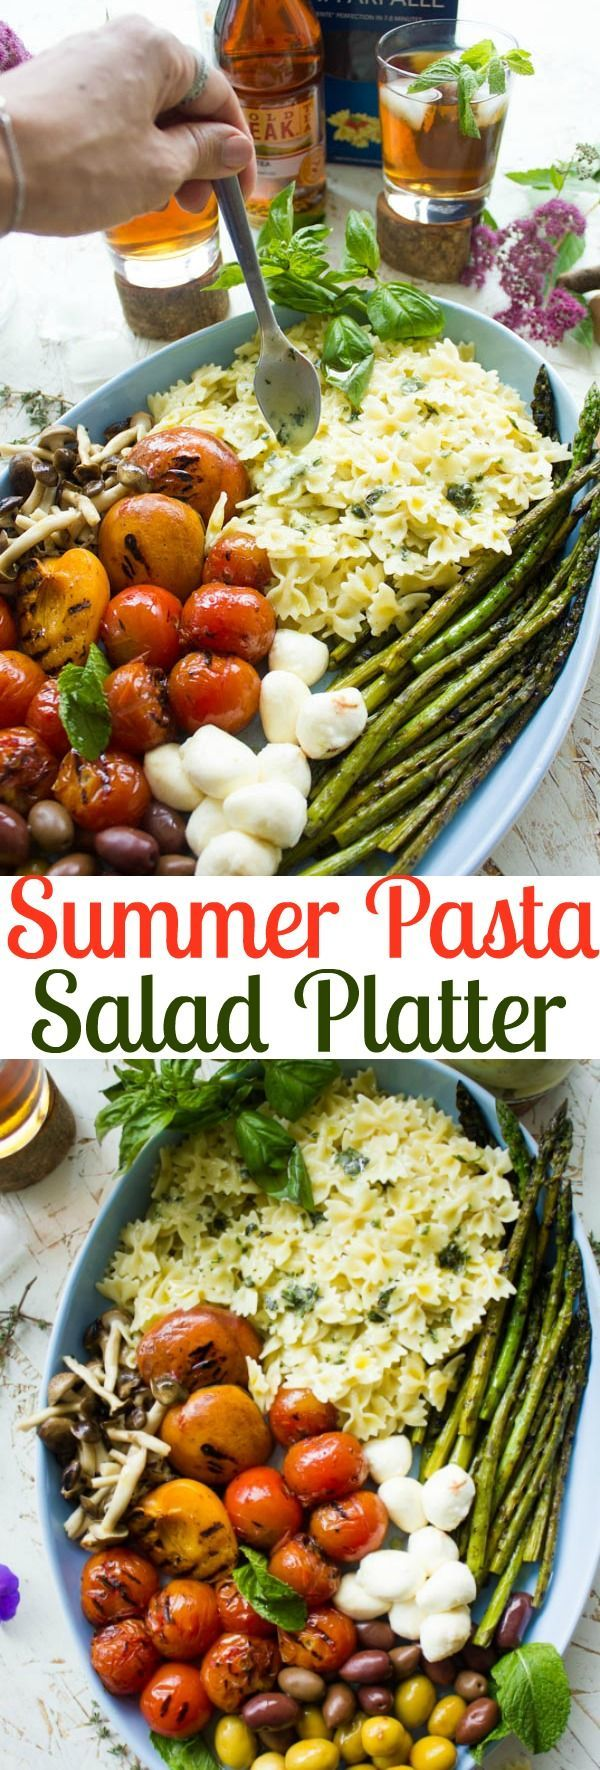 Summer Pasta Salad Platter With Sweet Tea Dressing. This will be our go to BBQ, picnic, potluck and all Summer long favorite! Platter style make your own pasta salad and an amazing herb sweet tea dressing to drizzle, plus get tips for throwing the perfect BBQ party! Ad #SummerTastes http://www.twopurplefigs.com